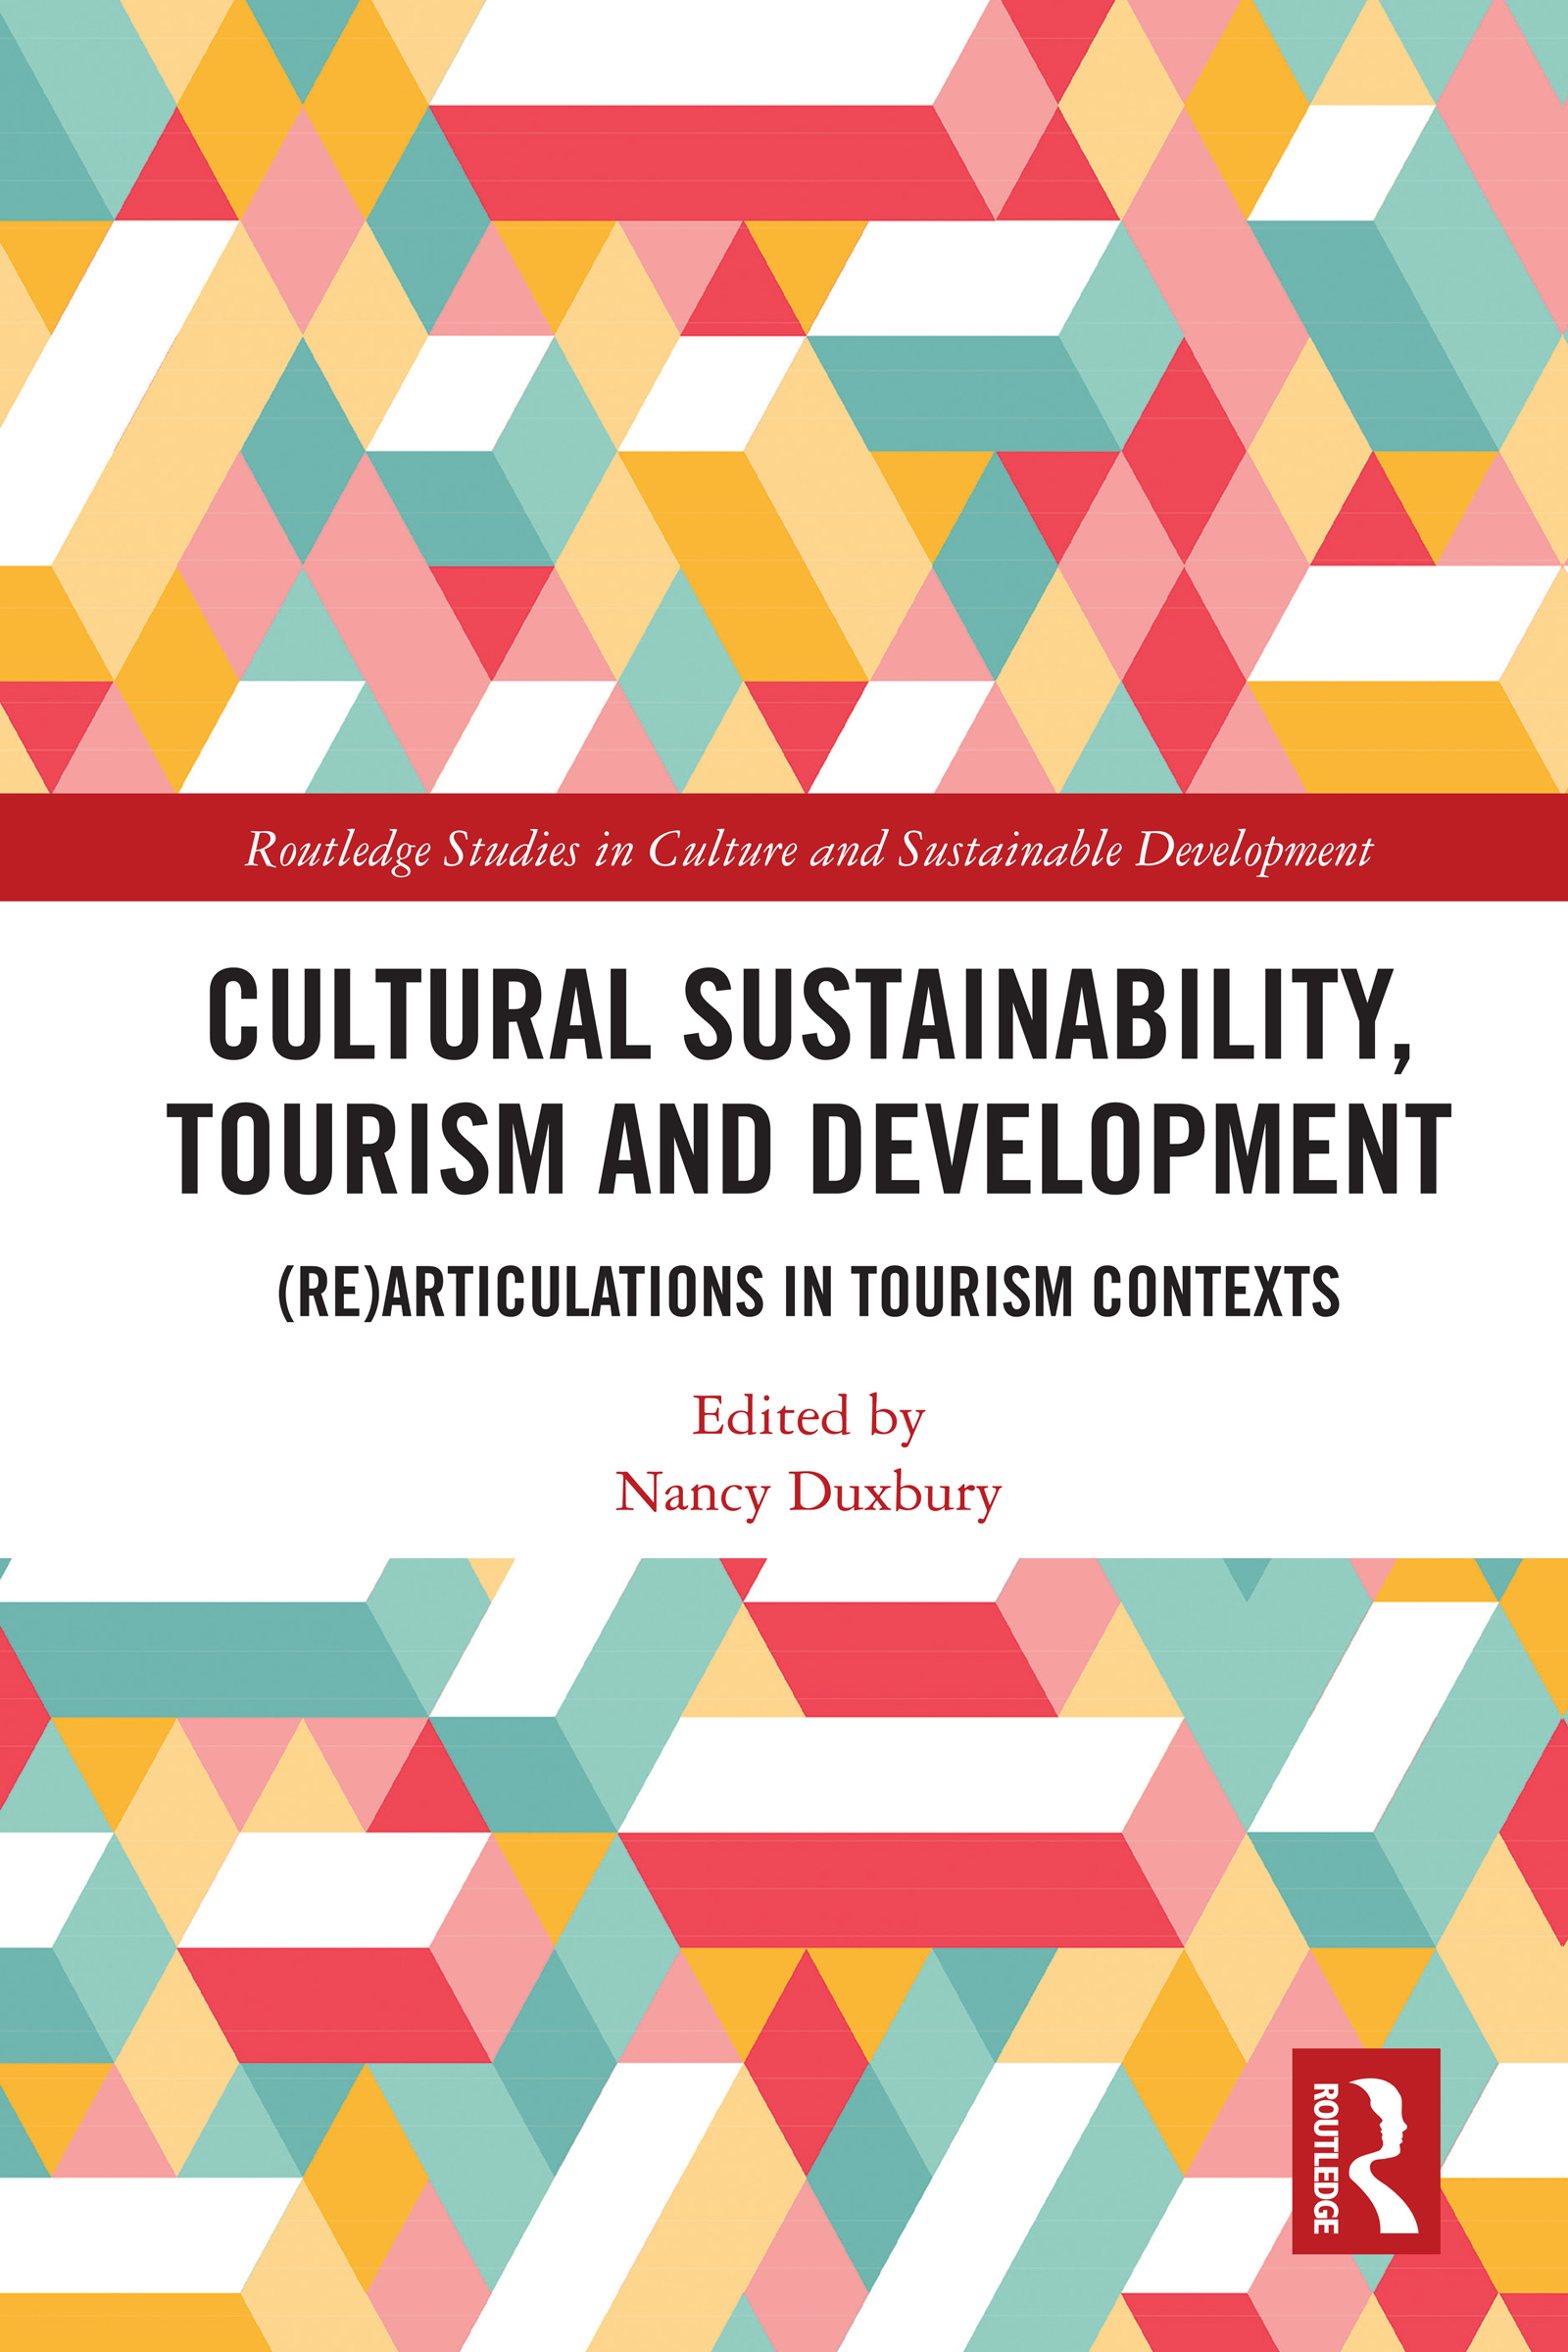 Cultural Sustainability, Tourism and Development